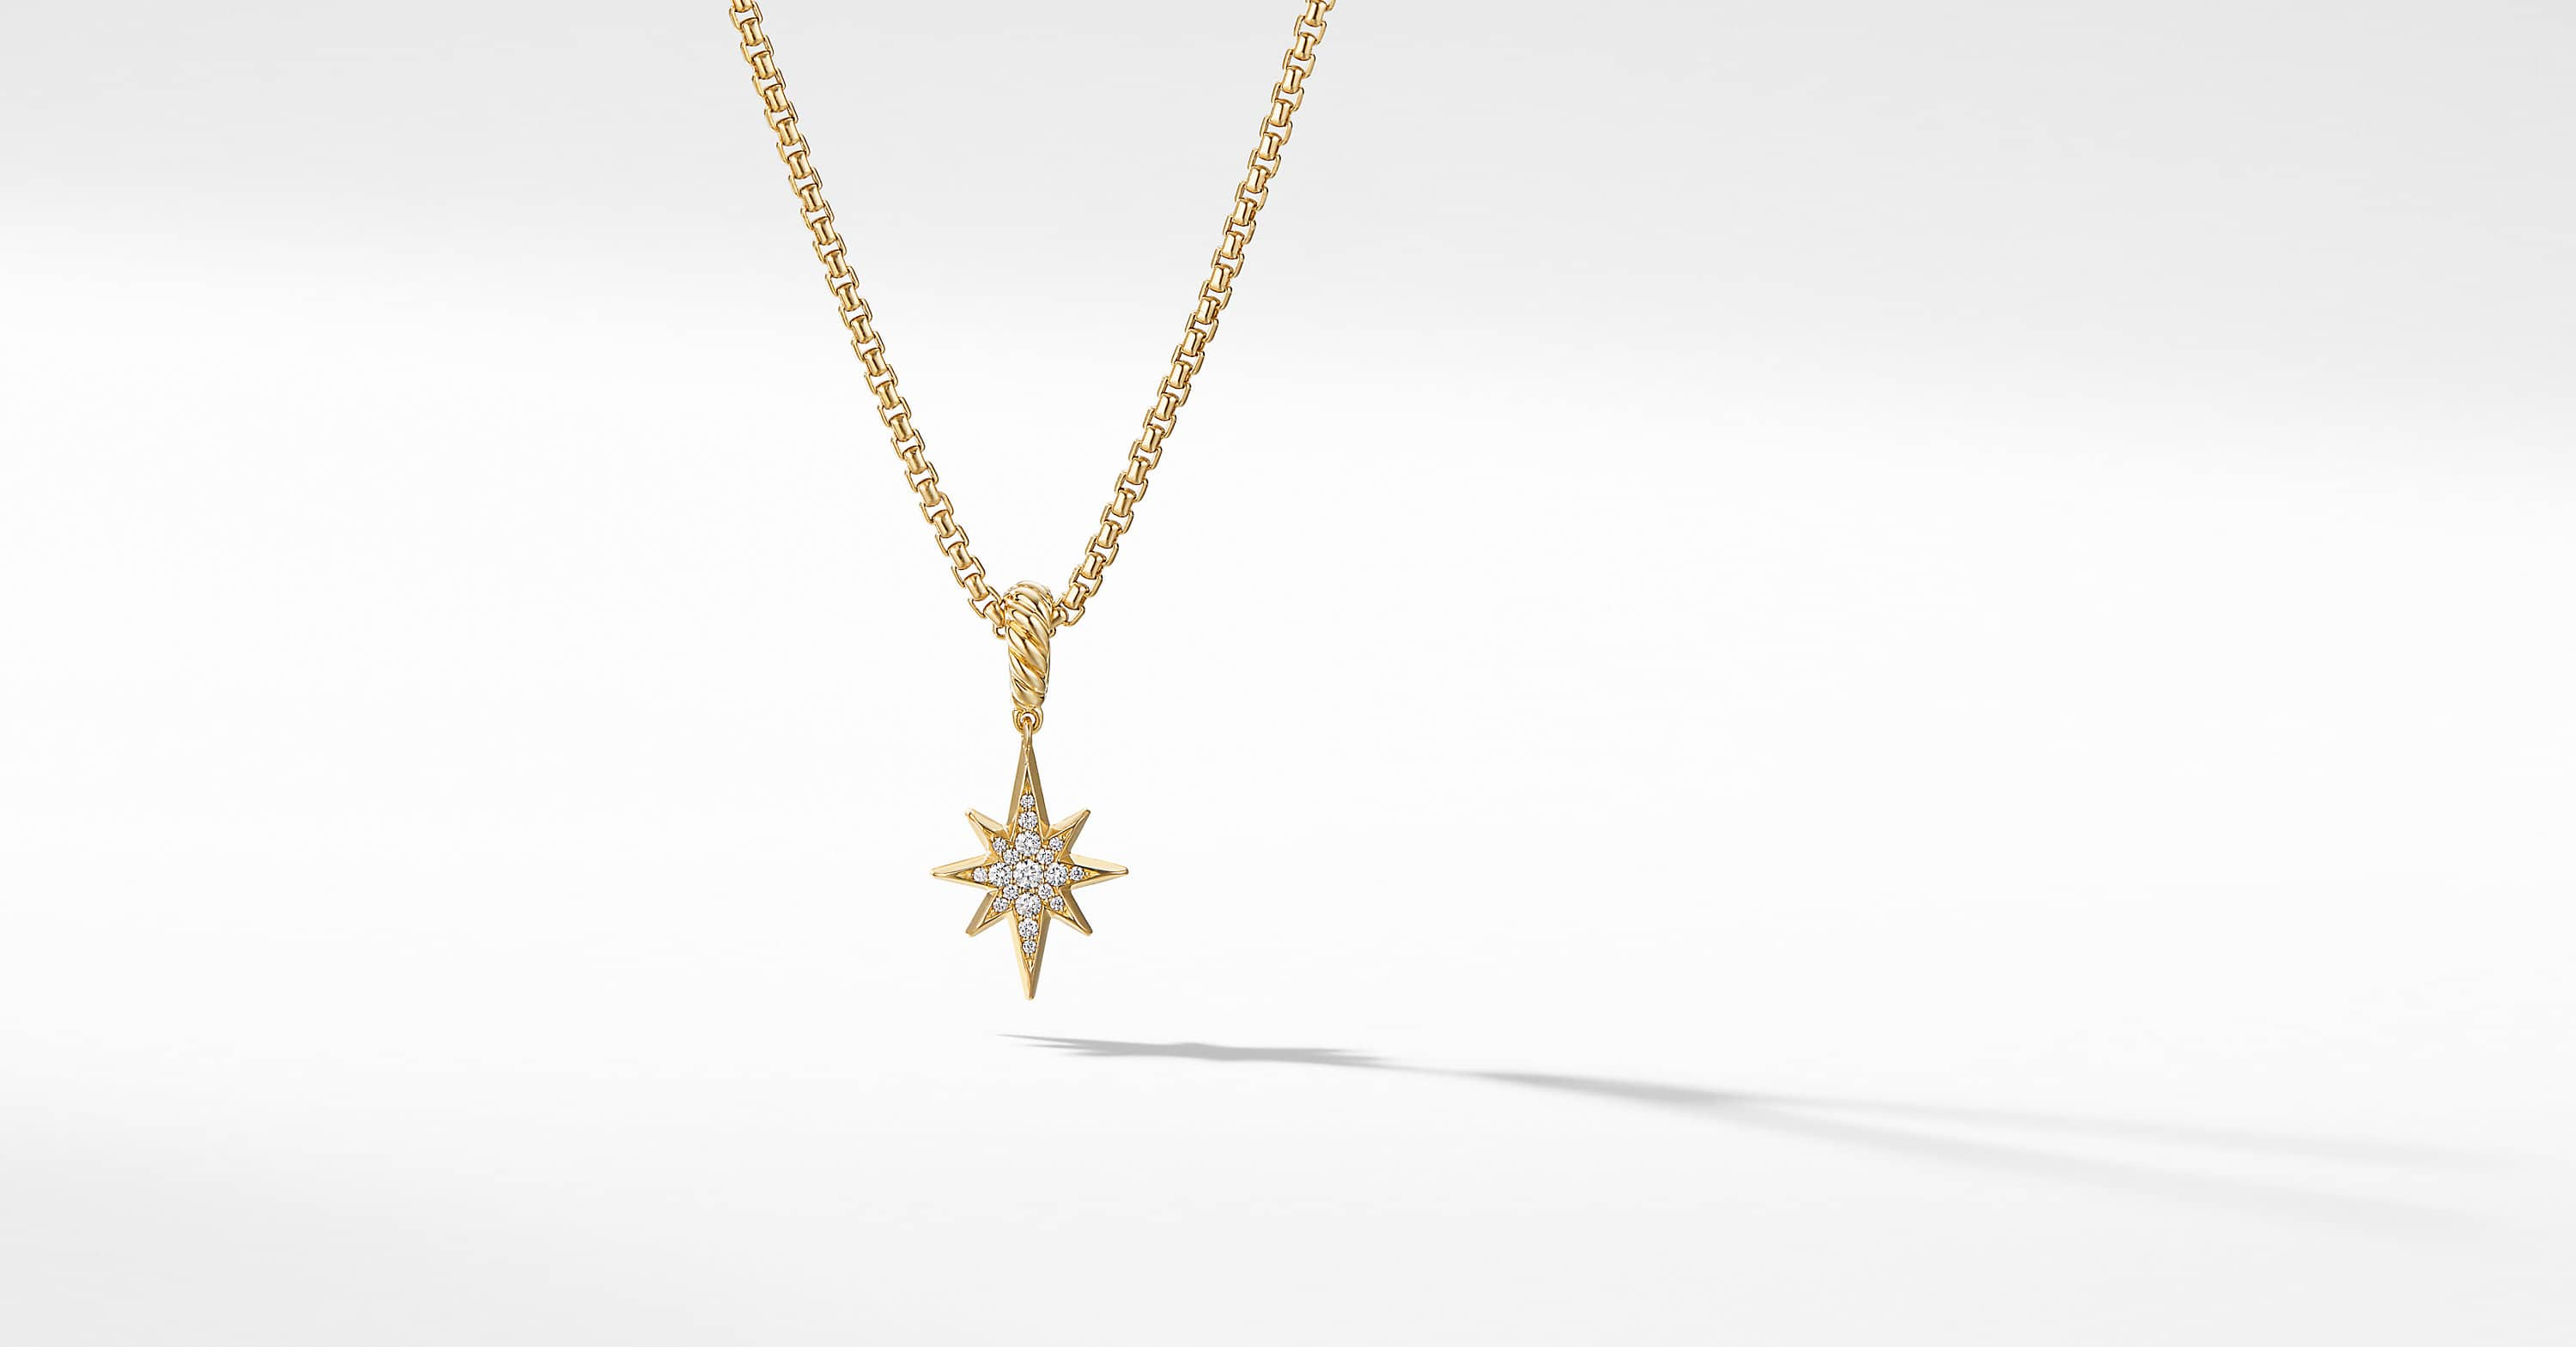 North Star Amulet in 18K Yellow Gold with Diamonds, 15mm